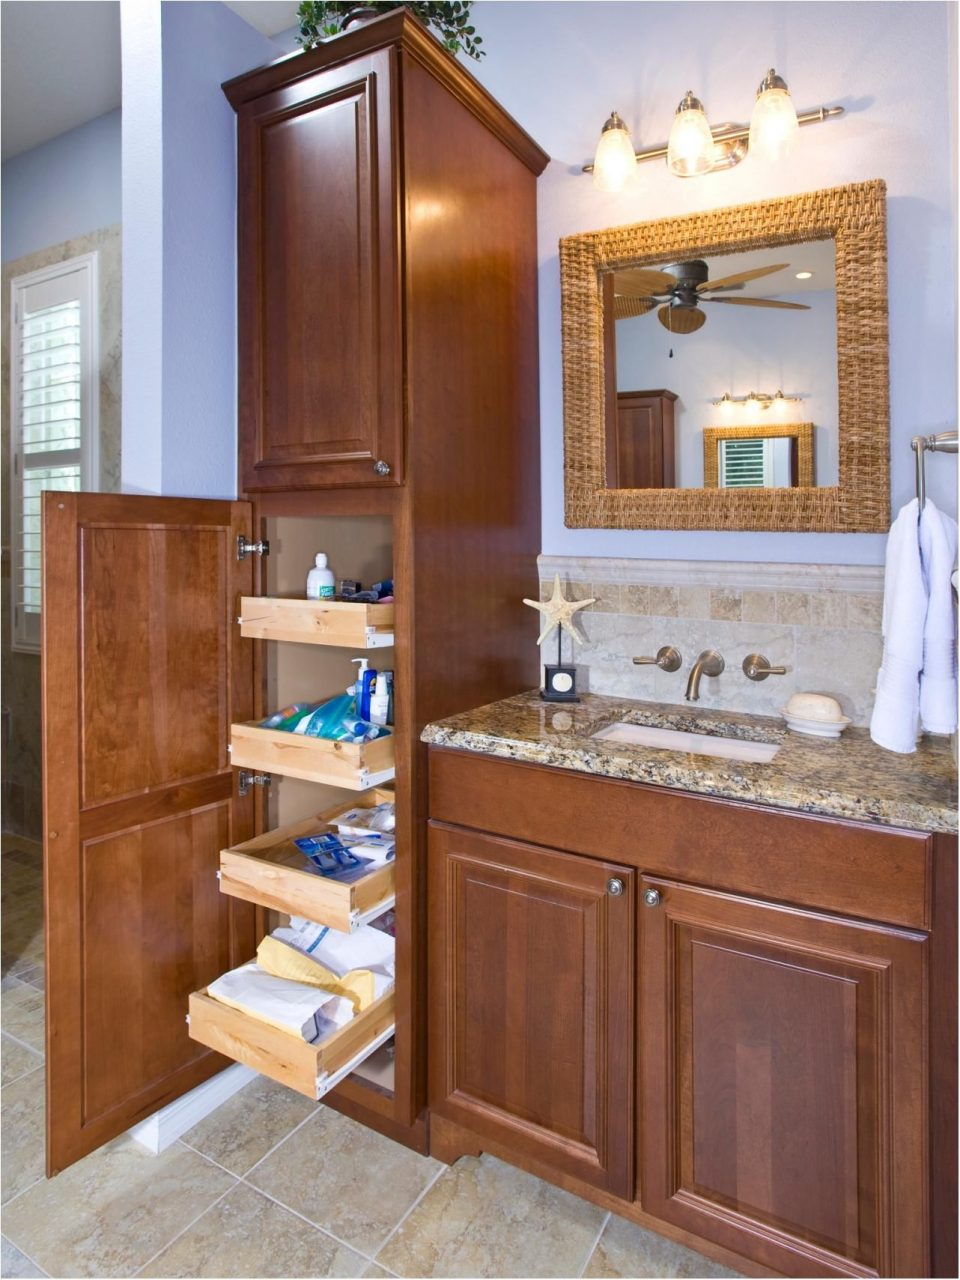 Incredible Advanced Bathroom Vanity Cabinets Melbourne Great Tall